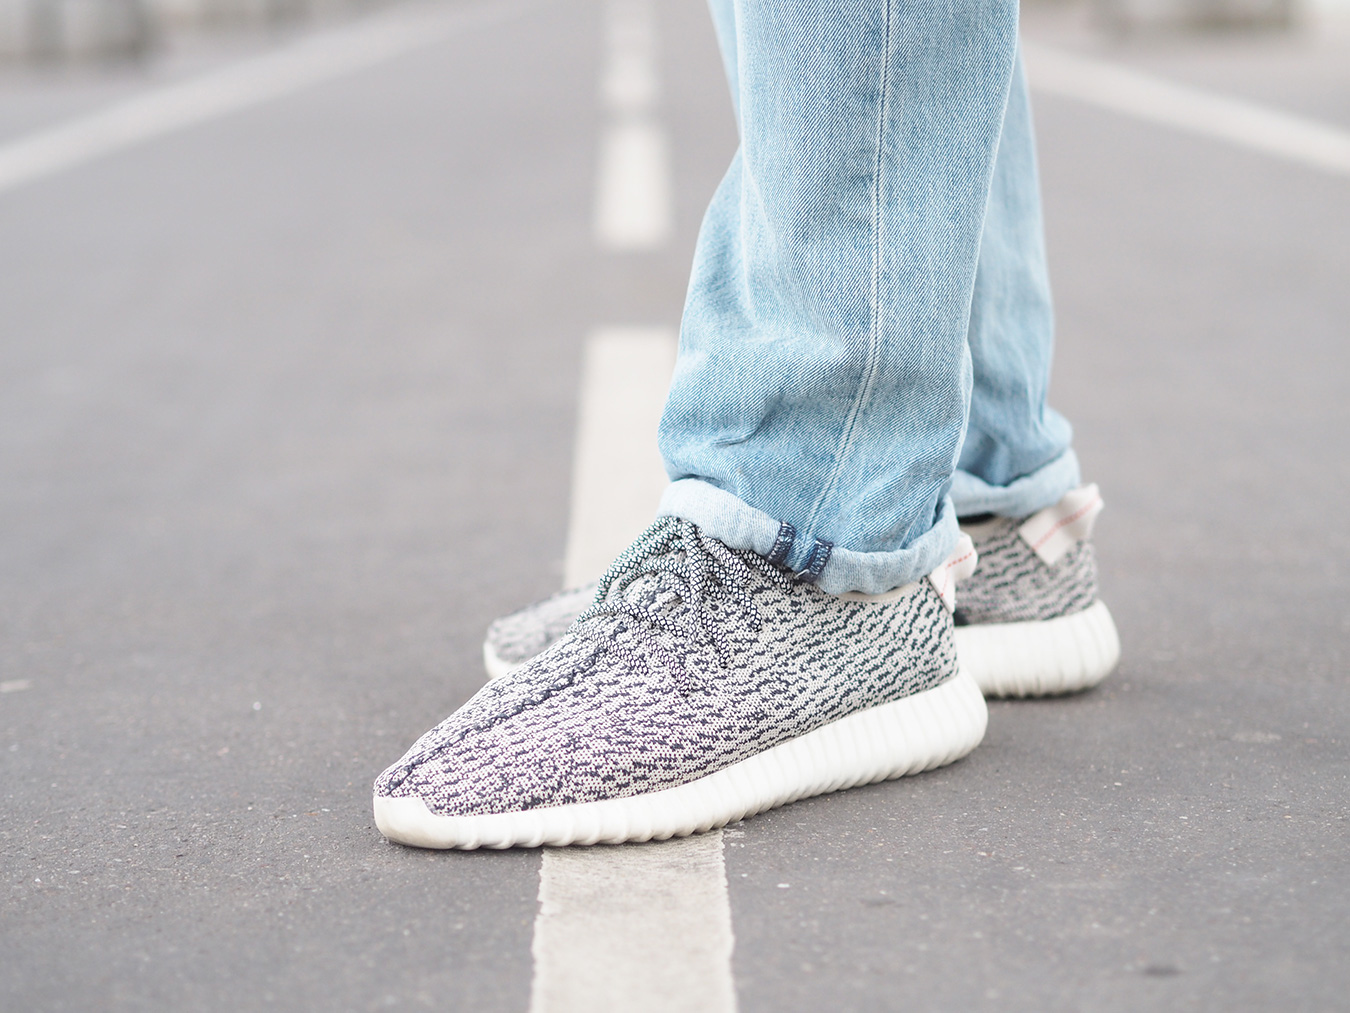 WDYWT Yeezy Boost 350 Turtle Dove